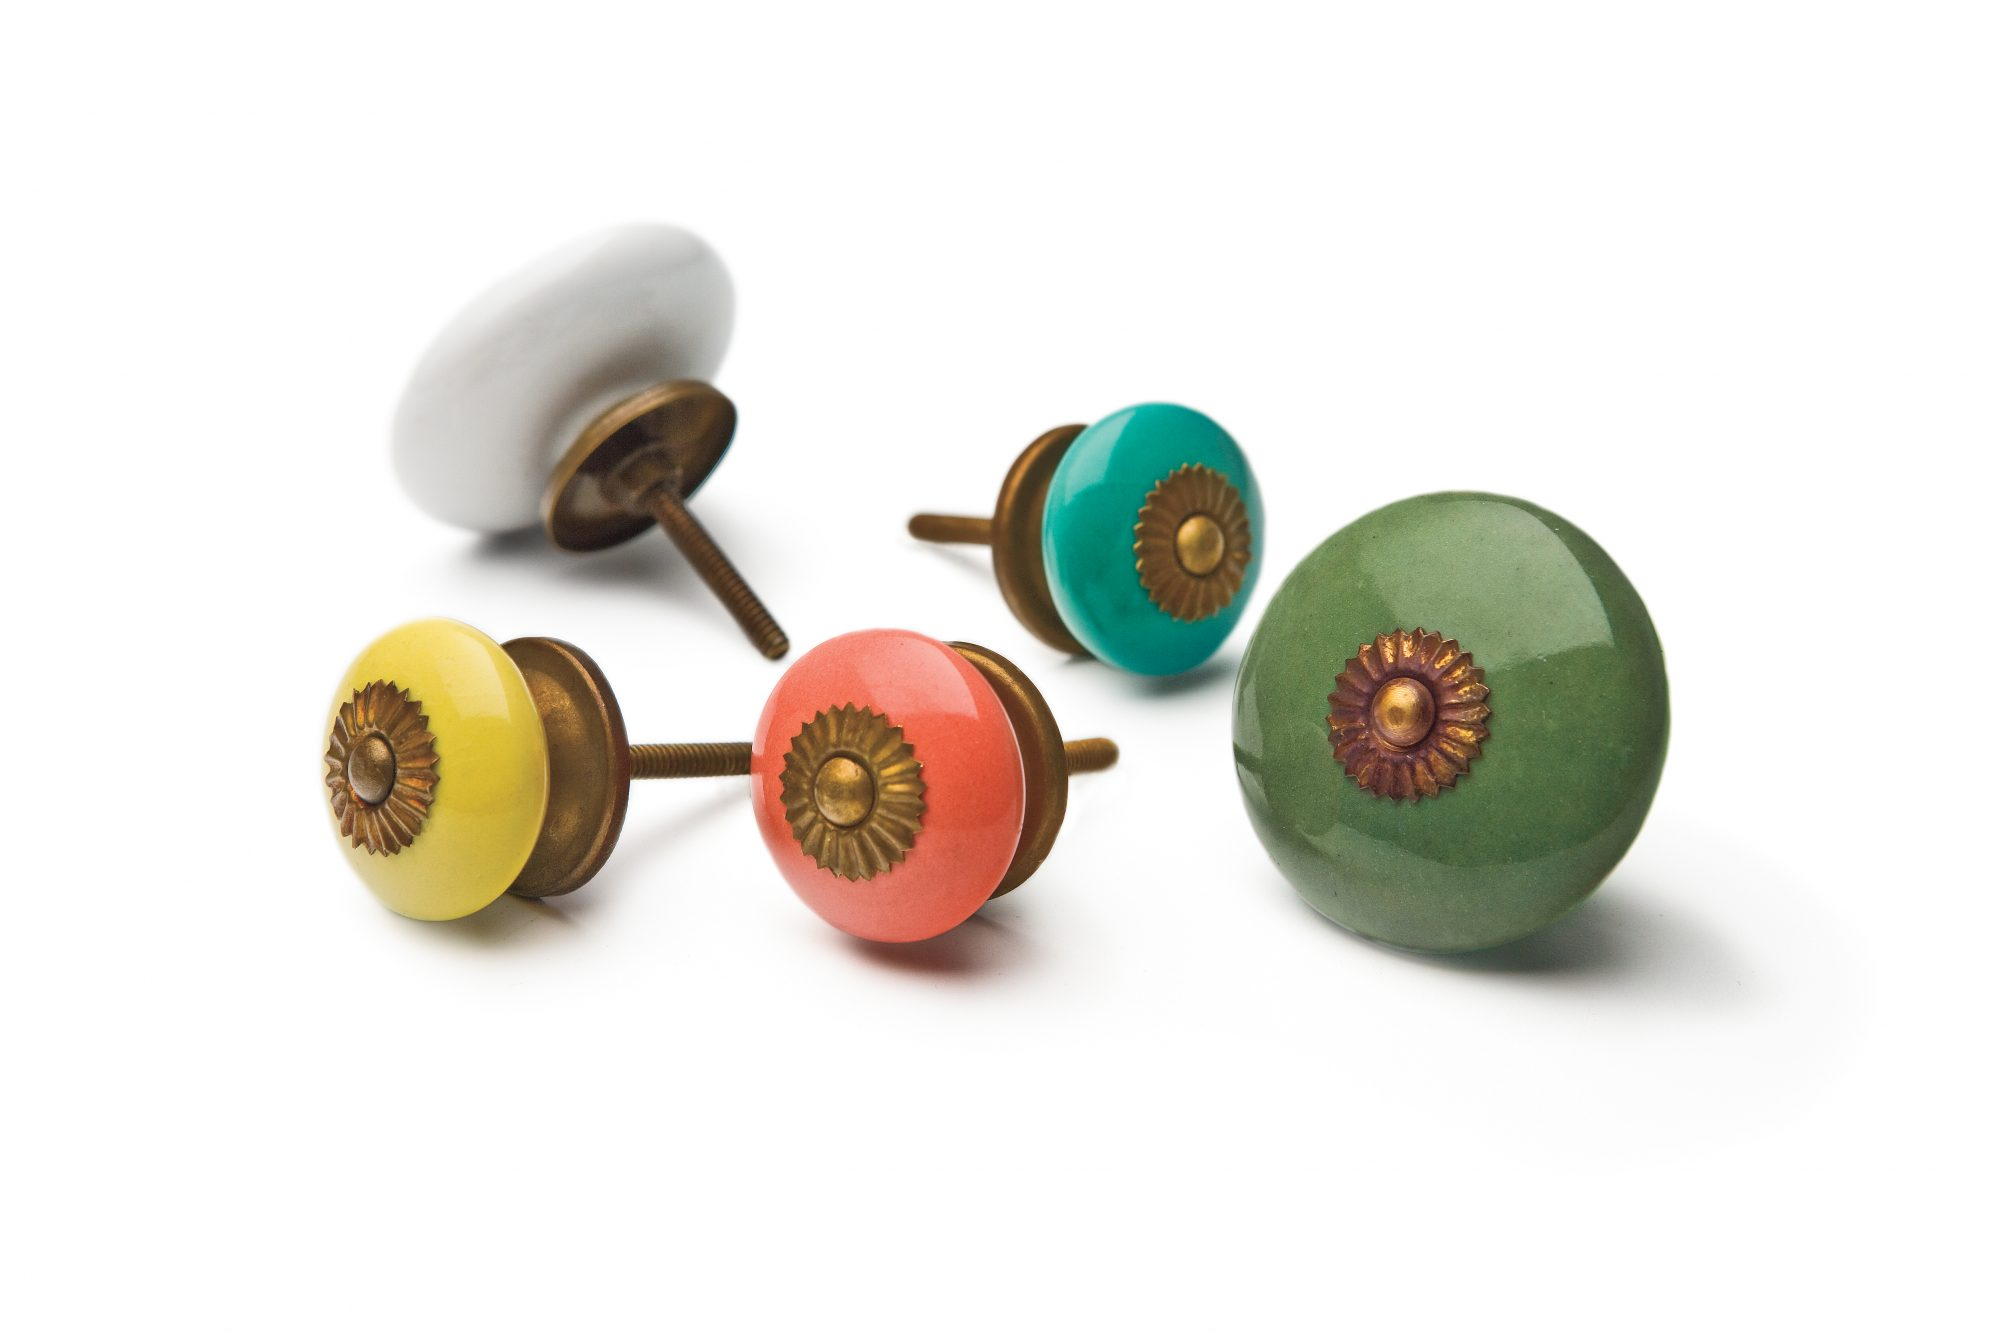 Inspired by our Vintage Kitchen: Zinnia Knobs